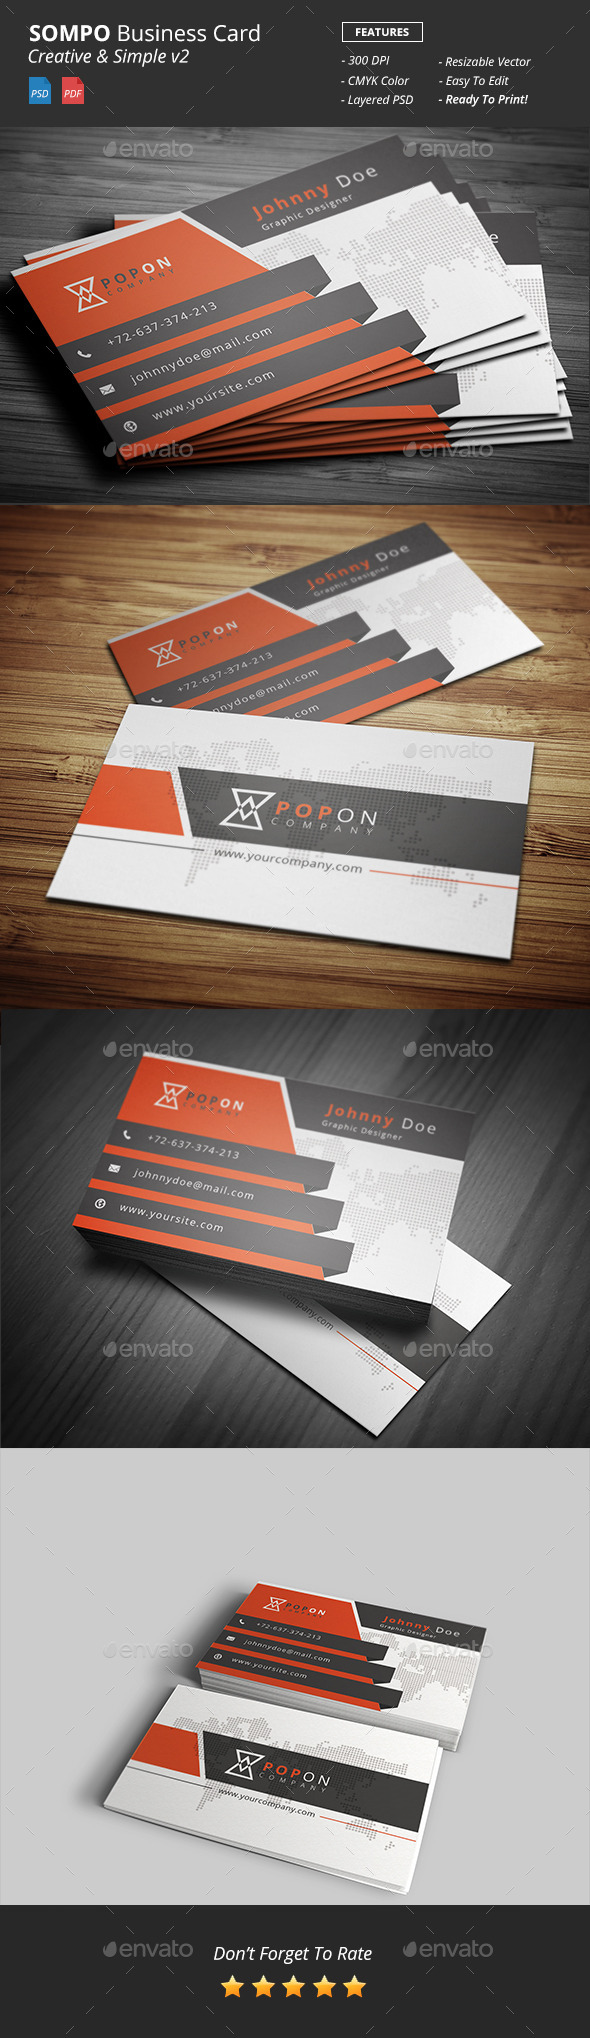 GraphicRiver Sompo Creative Bussiness Card Template v2 10599413